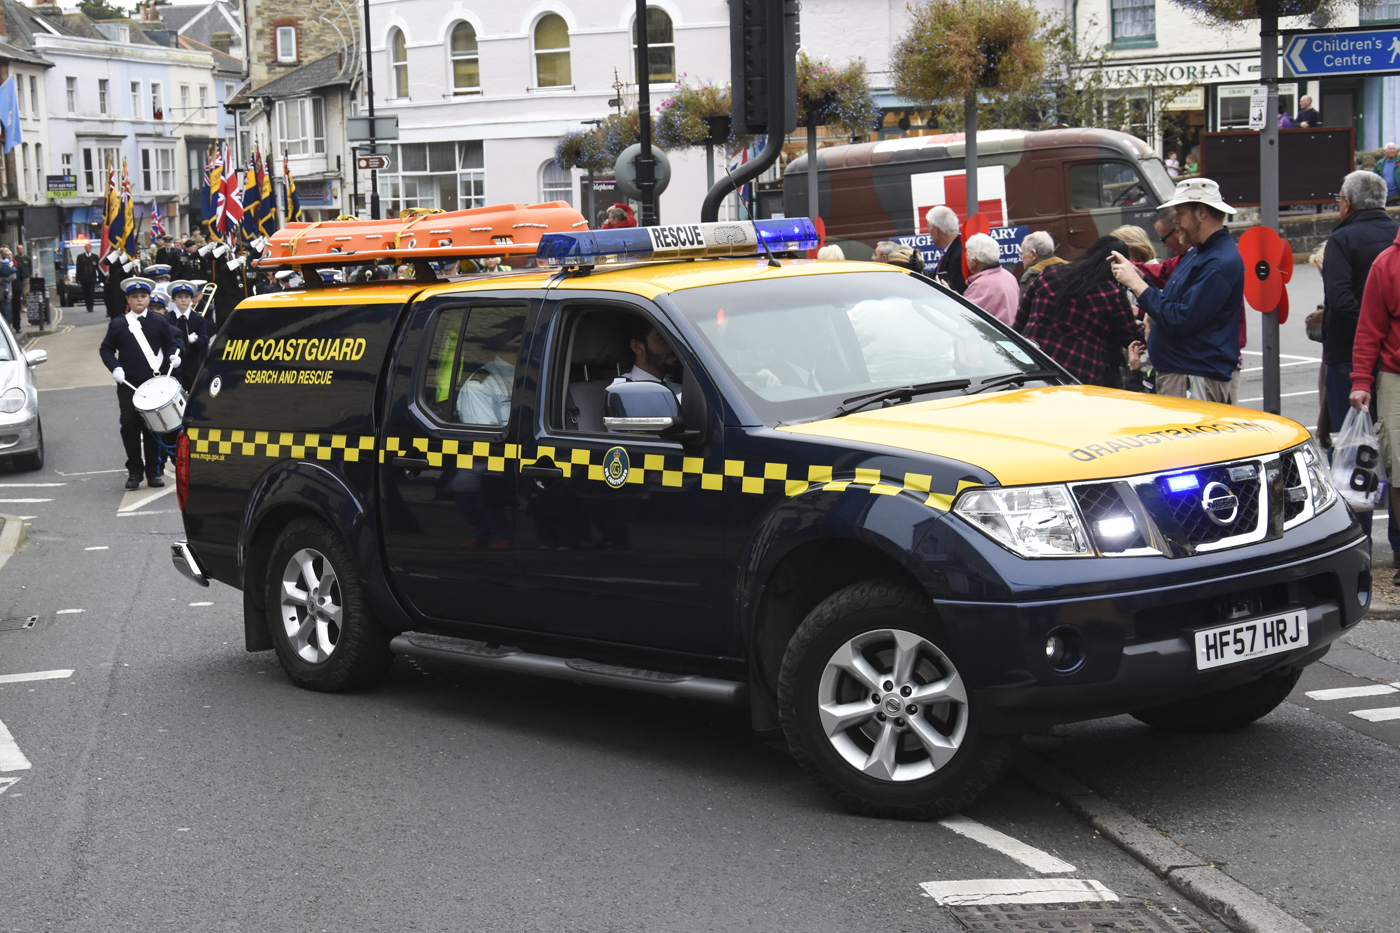 20161029_stp_3481-hss-launch-of-the-poppy-appeal-2016-in-ventnor